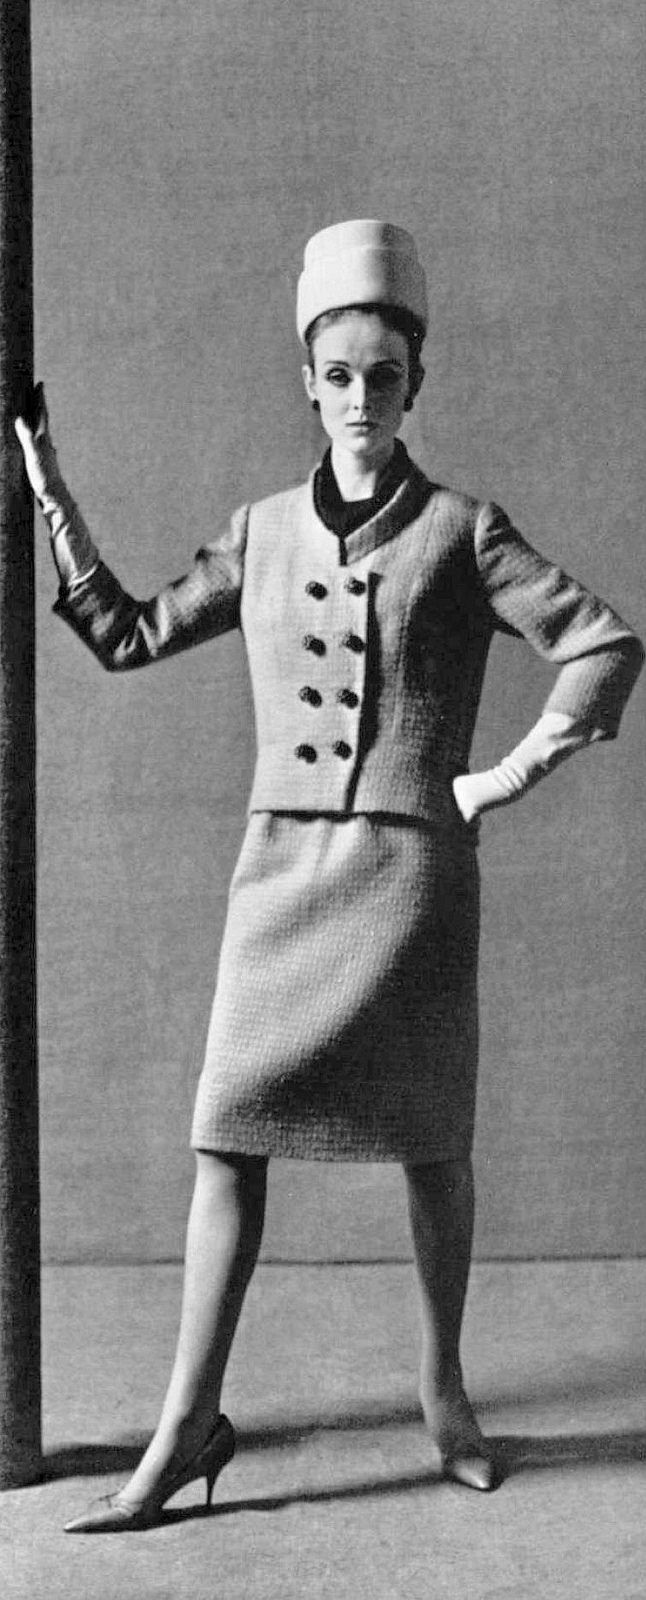 Grace Coddington in sky blue wool suit by Philippe Venet, photo by Guy Arsac, 1963